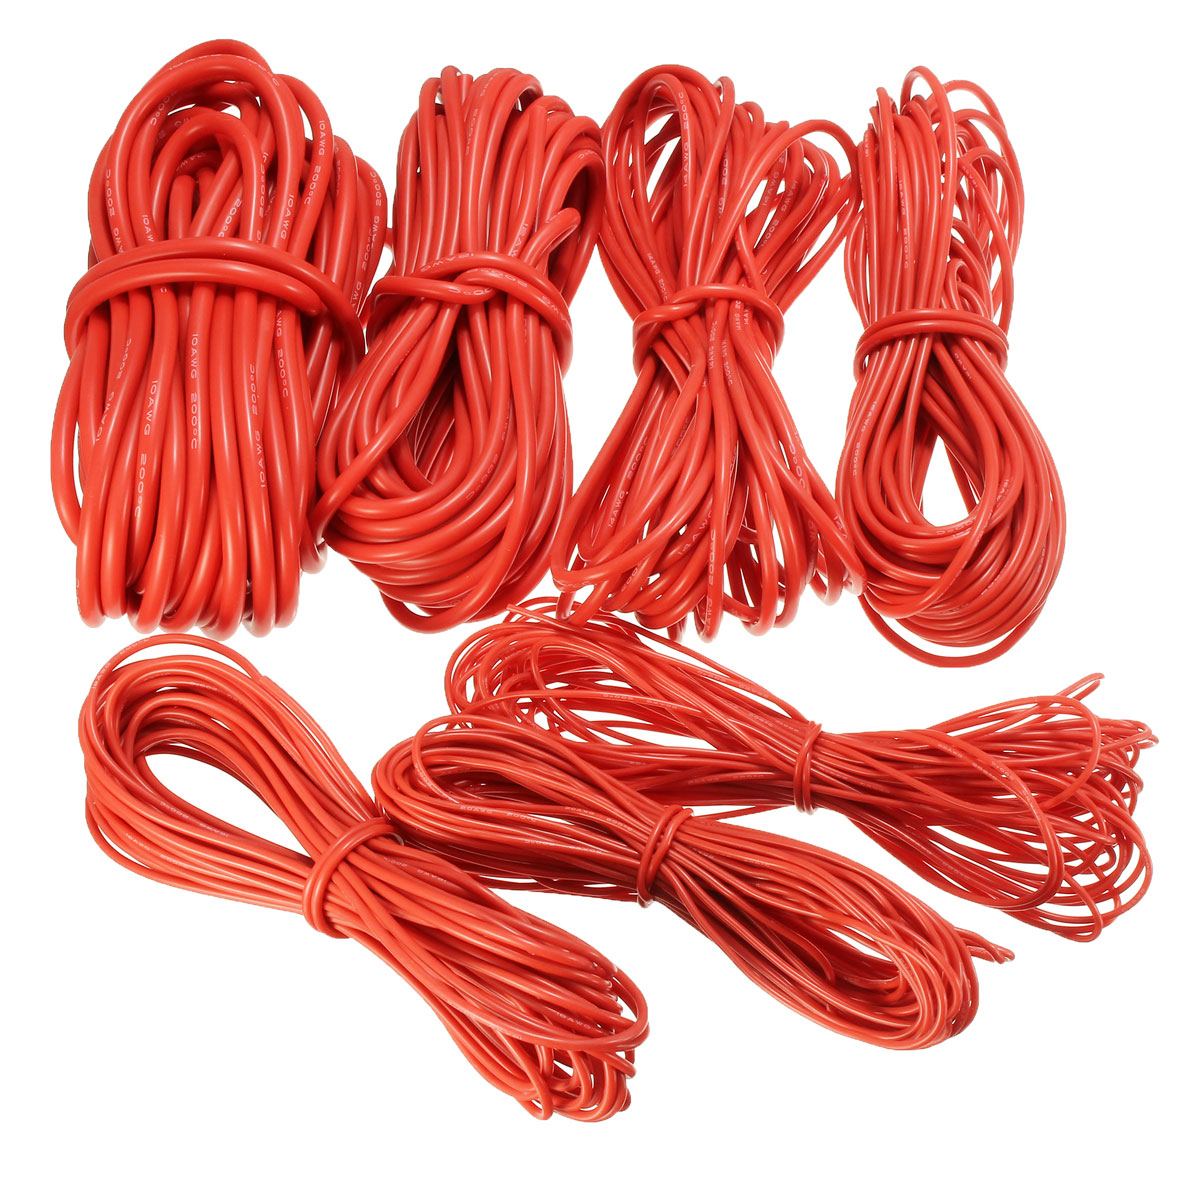 DANIU 10 Meter Red Silicone Wire Cable 10/12/14/16/18/20/22AWG Flexible Cable